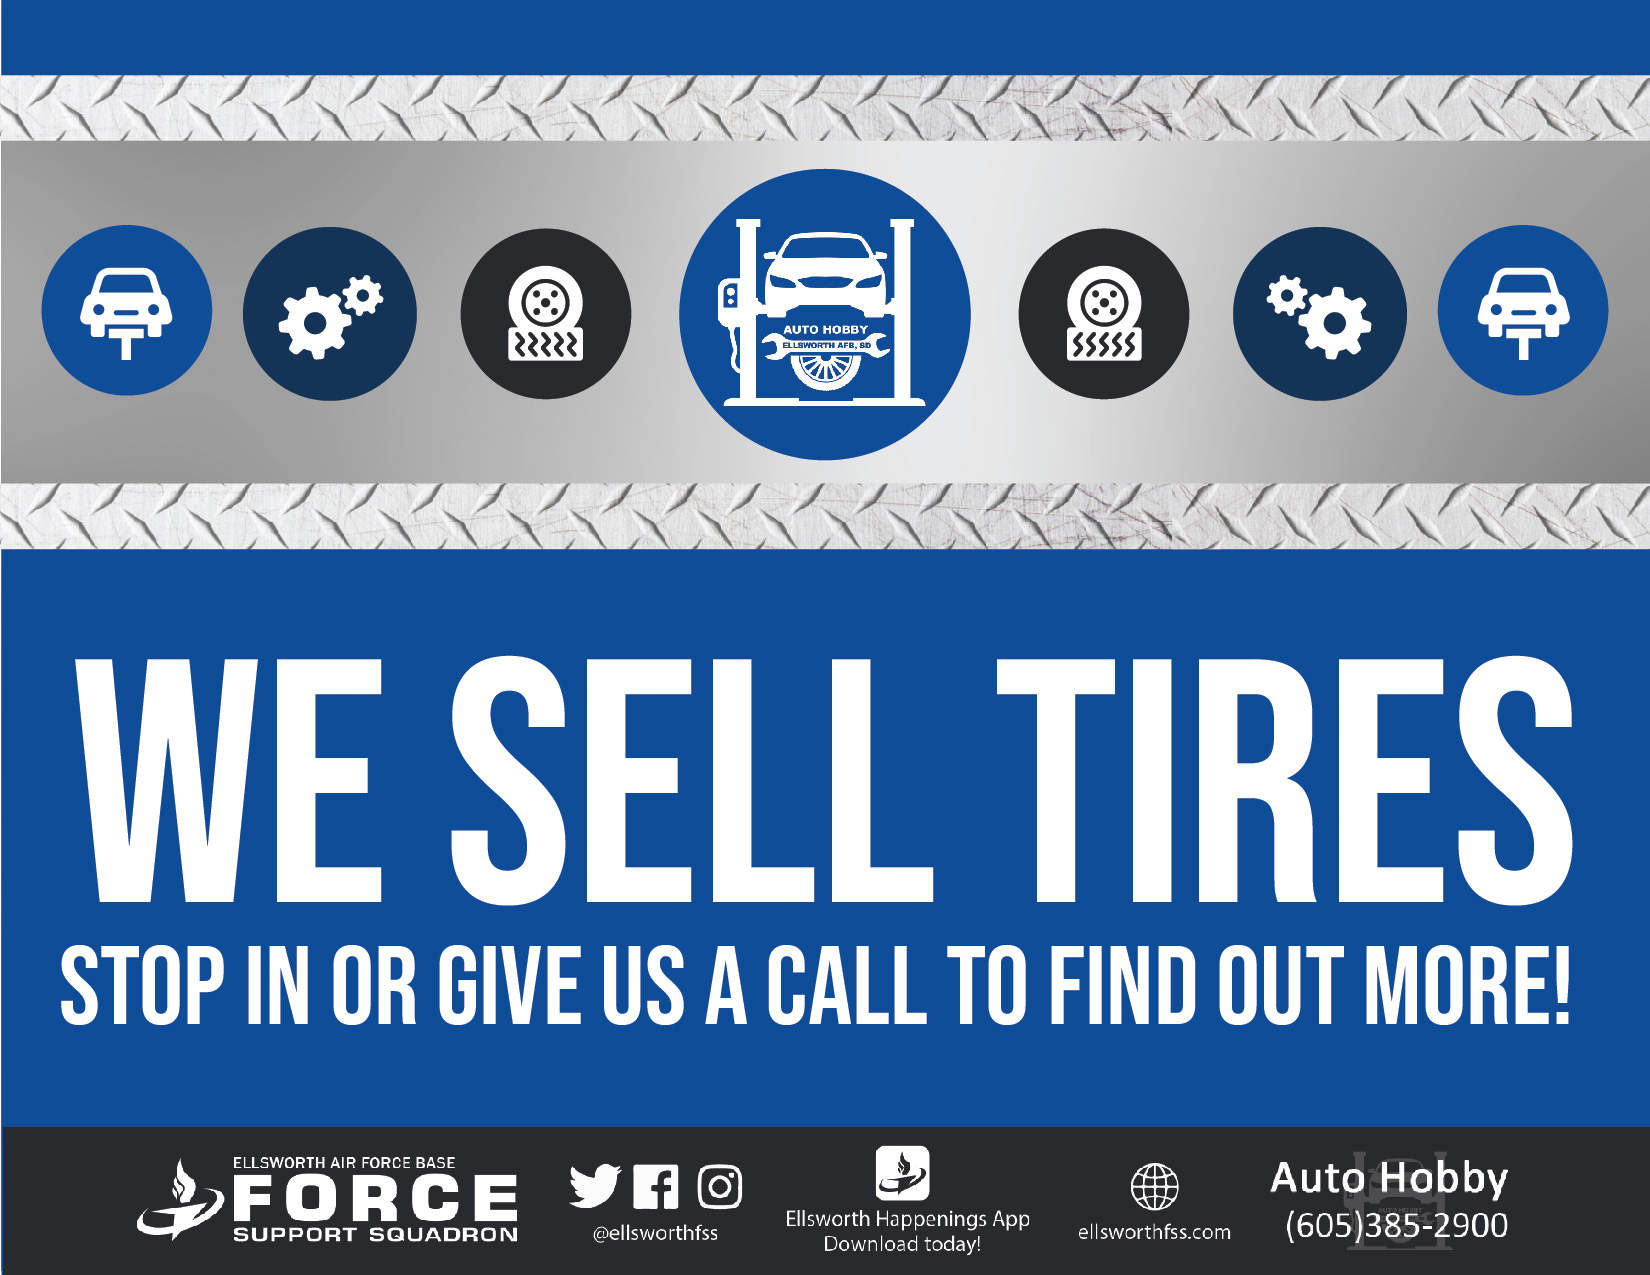 We sell tires 01